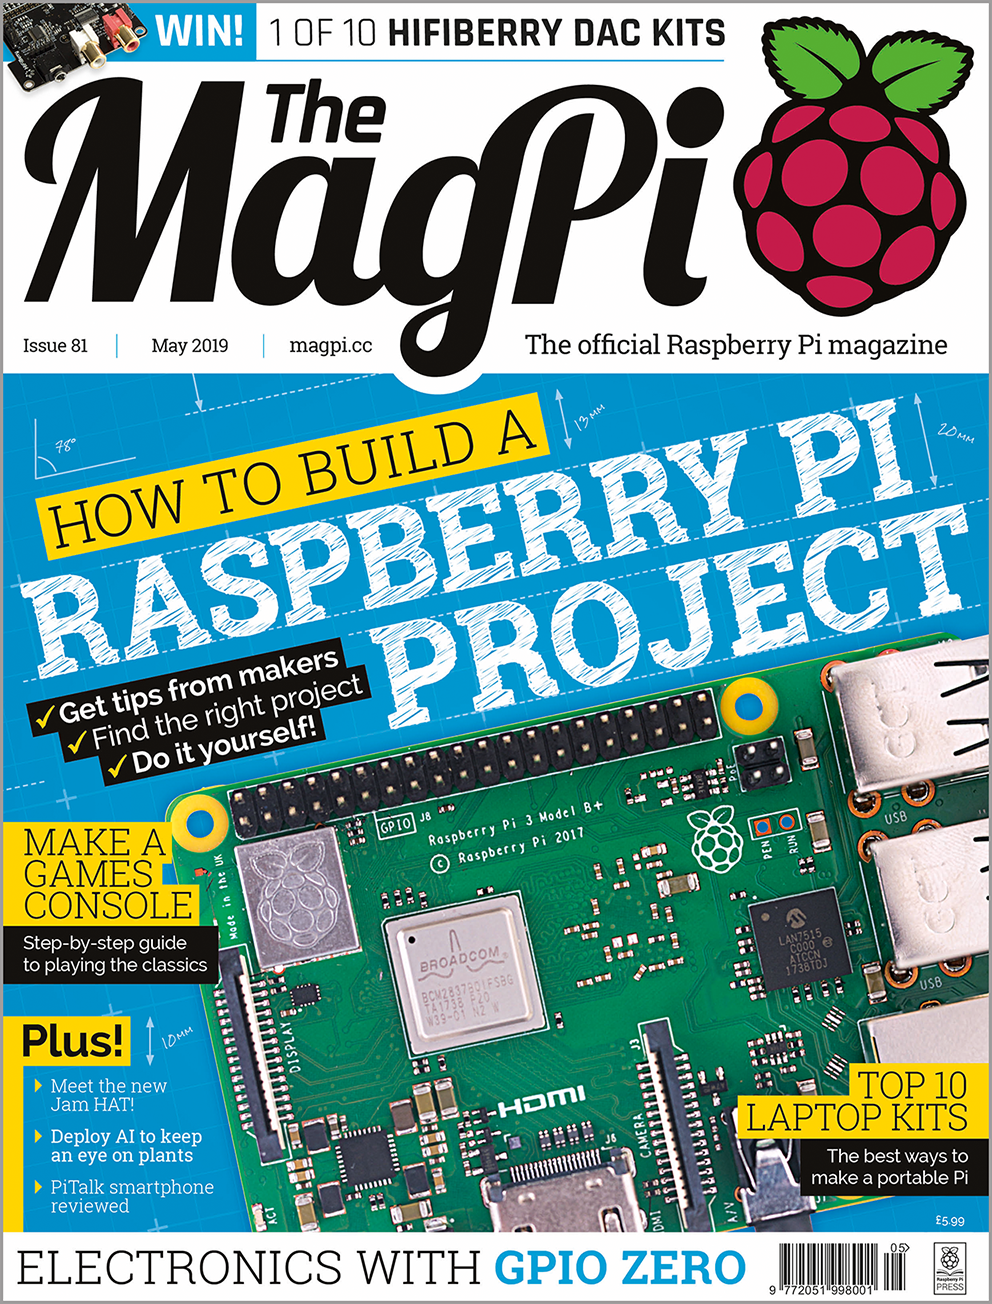 Issue 81 — The MagPi magazine